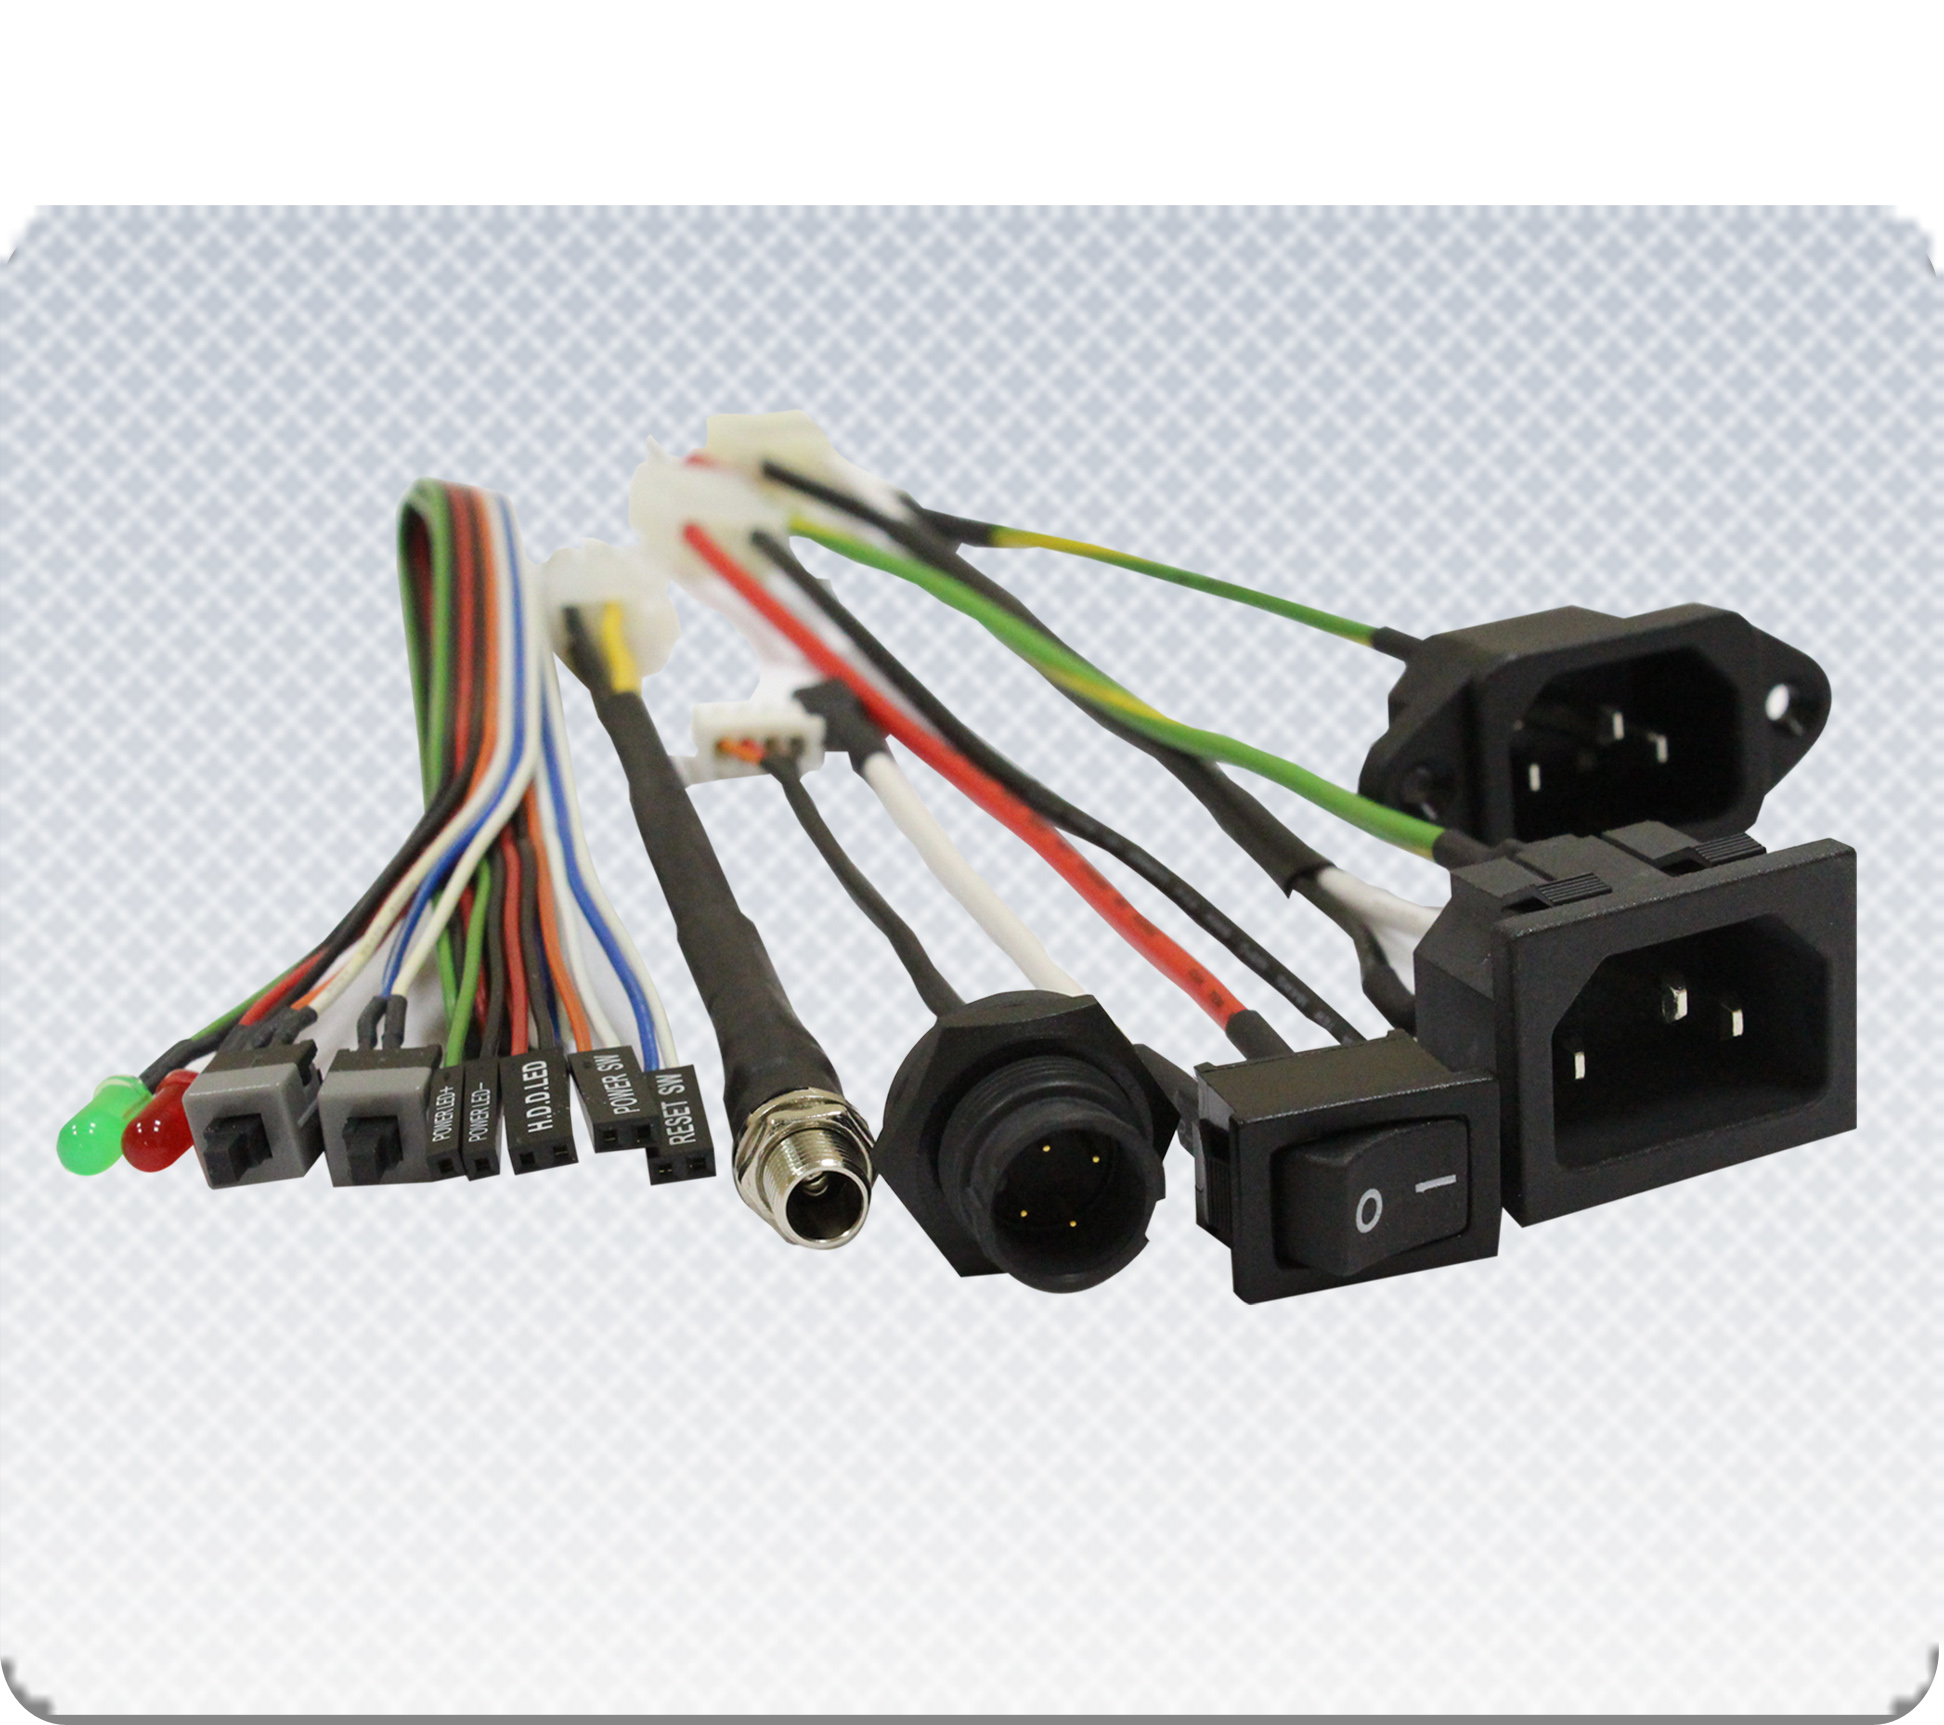 Wiring Harness Manufacturer Supplier Cover For Wire